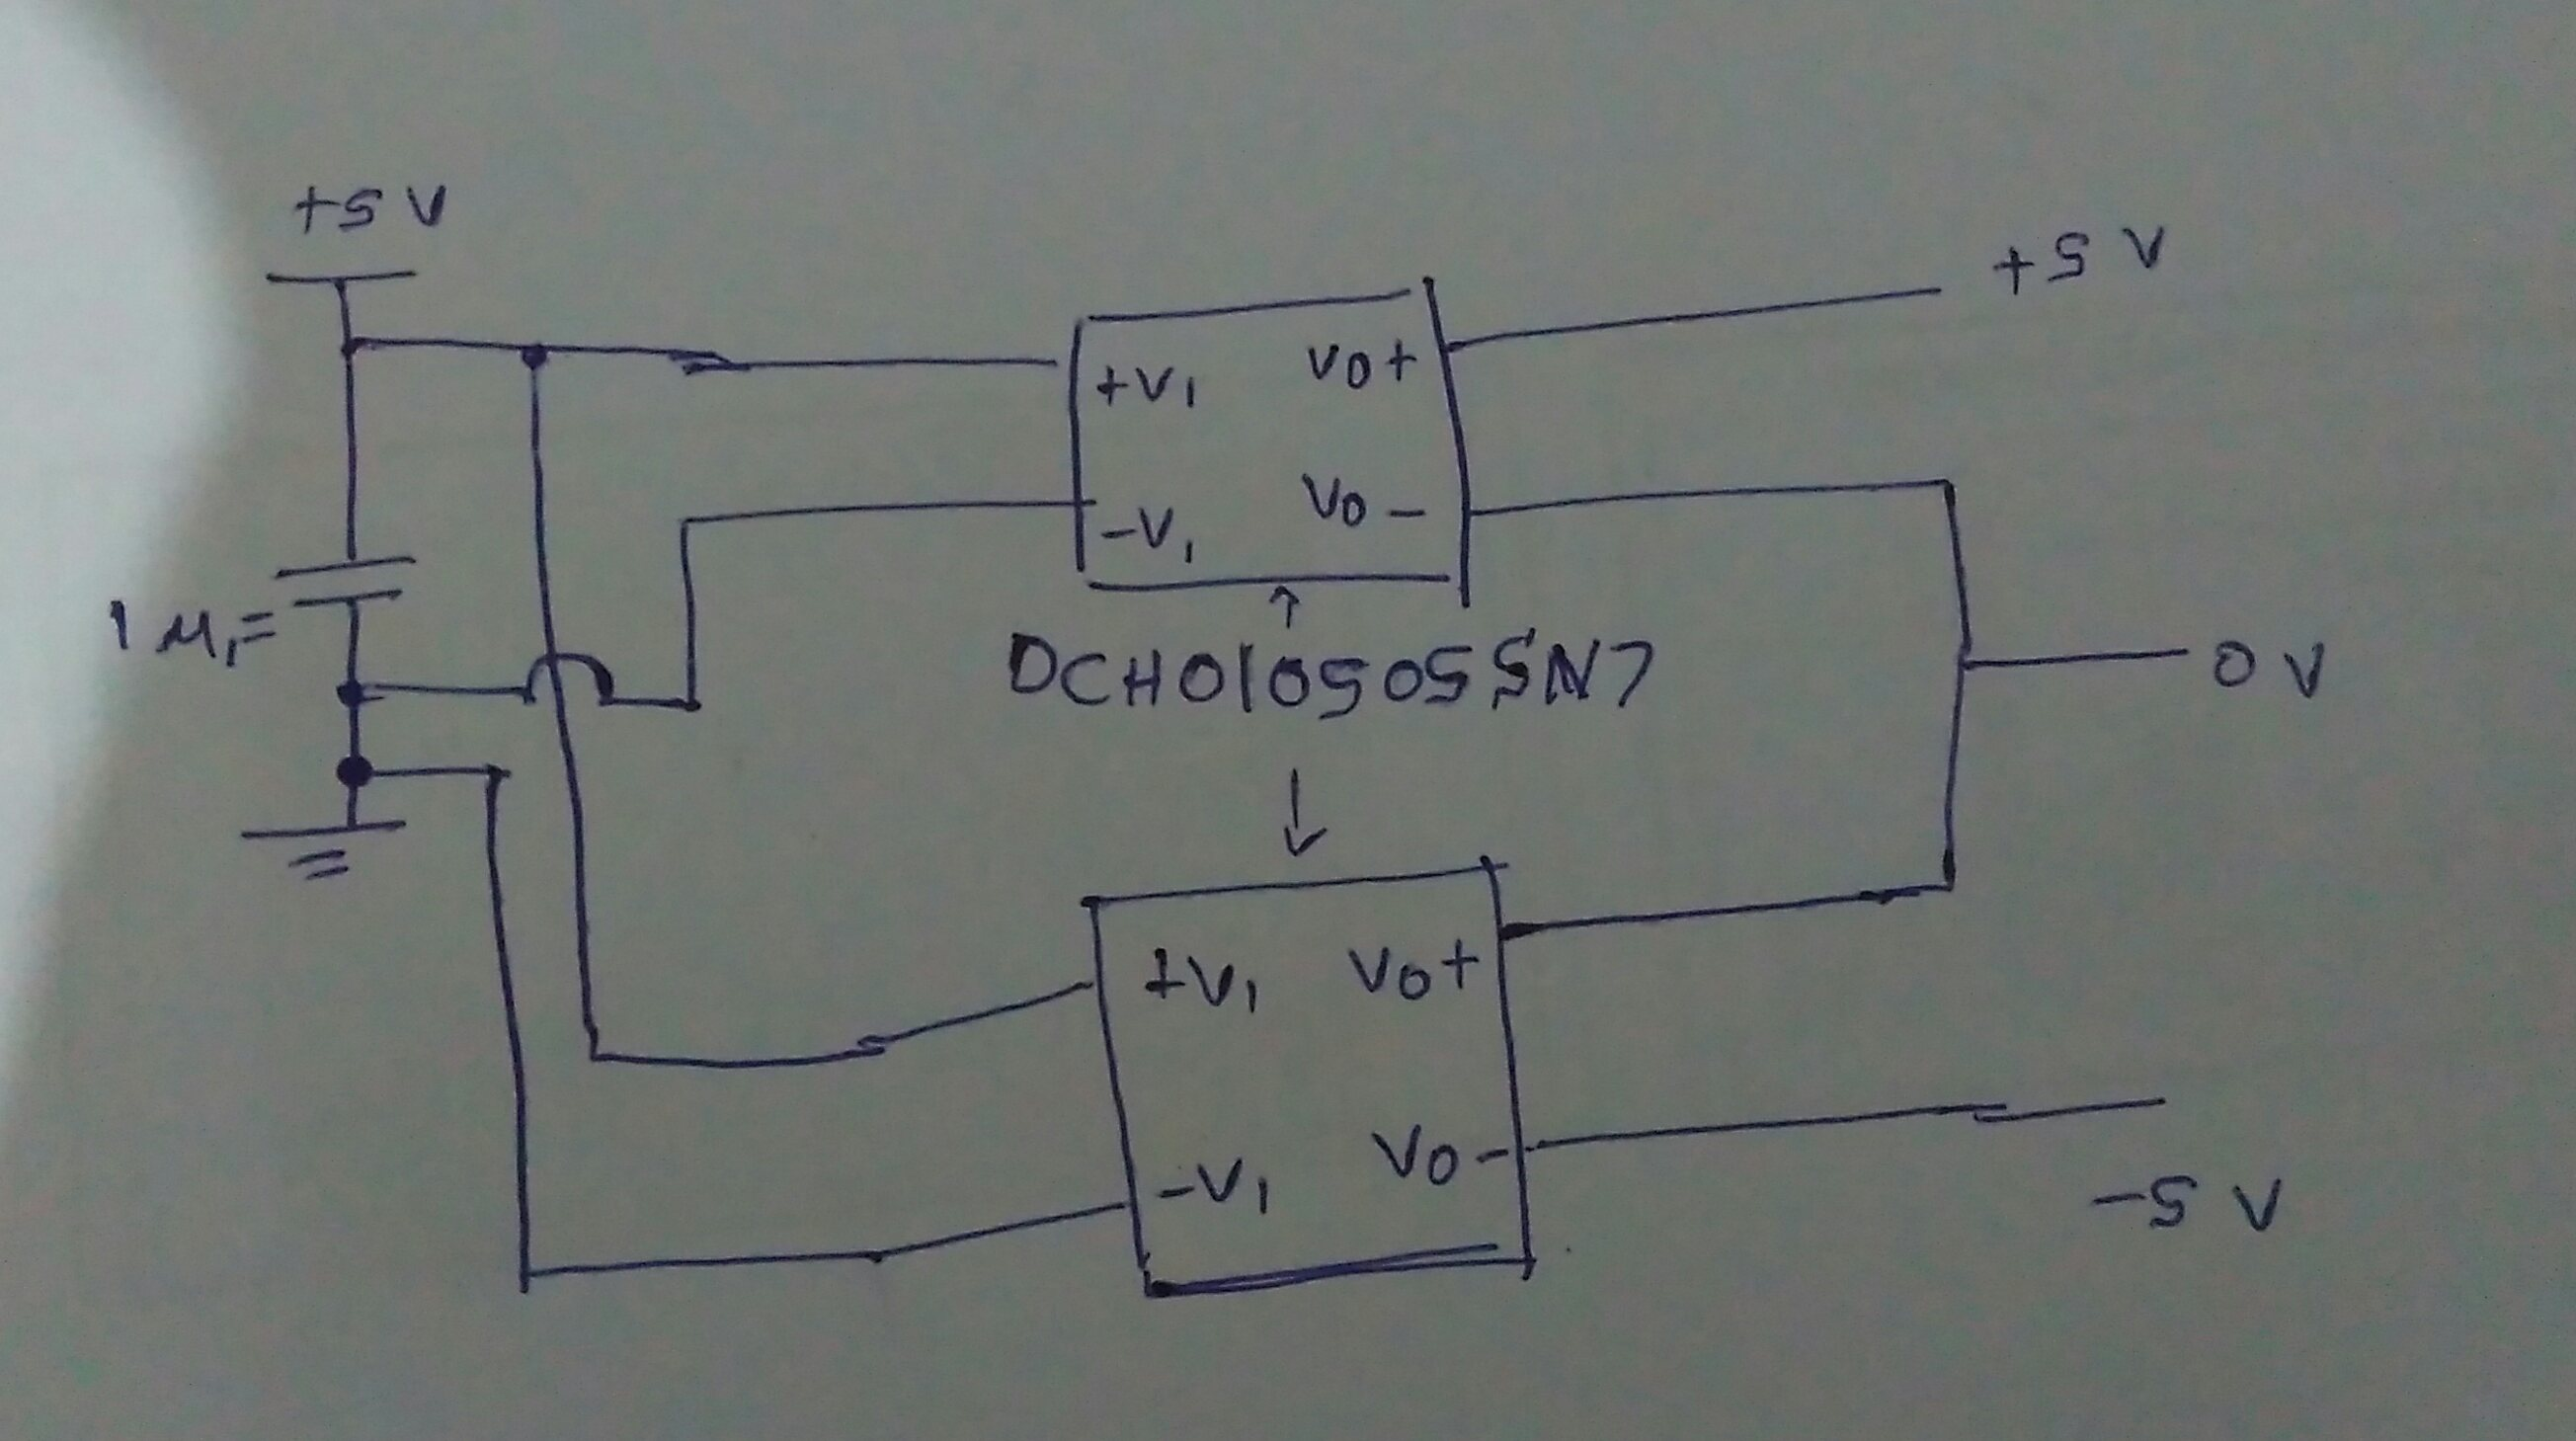 Resolved Amc1100 Isolated Power Supply Without Transformers Dc Miniature Diagram And Circuit I Draw Very Simple Sketch Of A Dual Using Dch010505sn7 Converter Can You Please Tell Me Will It Work Is Possible To Connect Two Converters